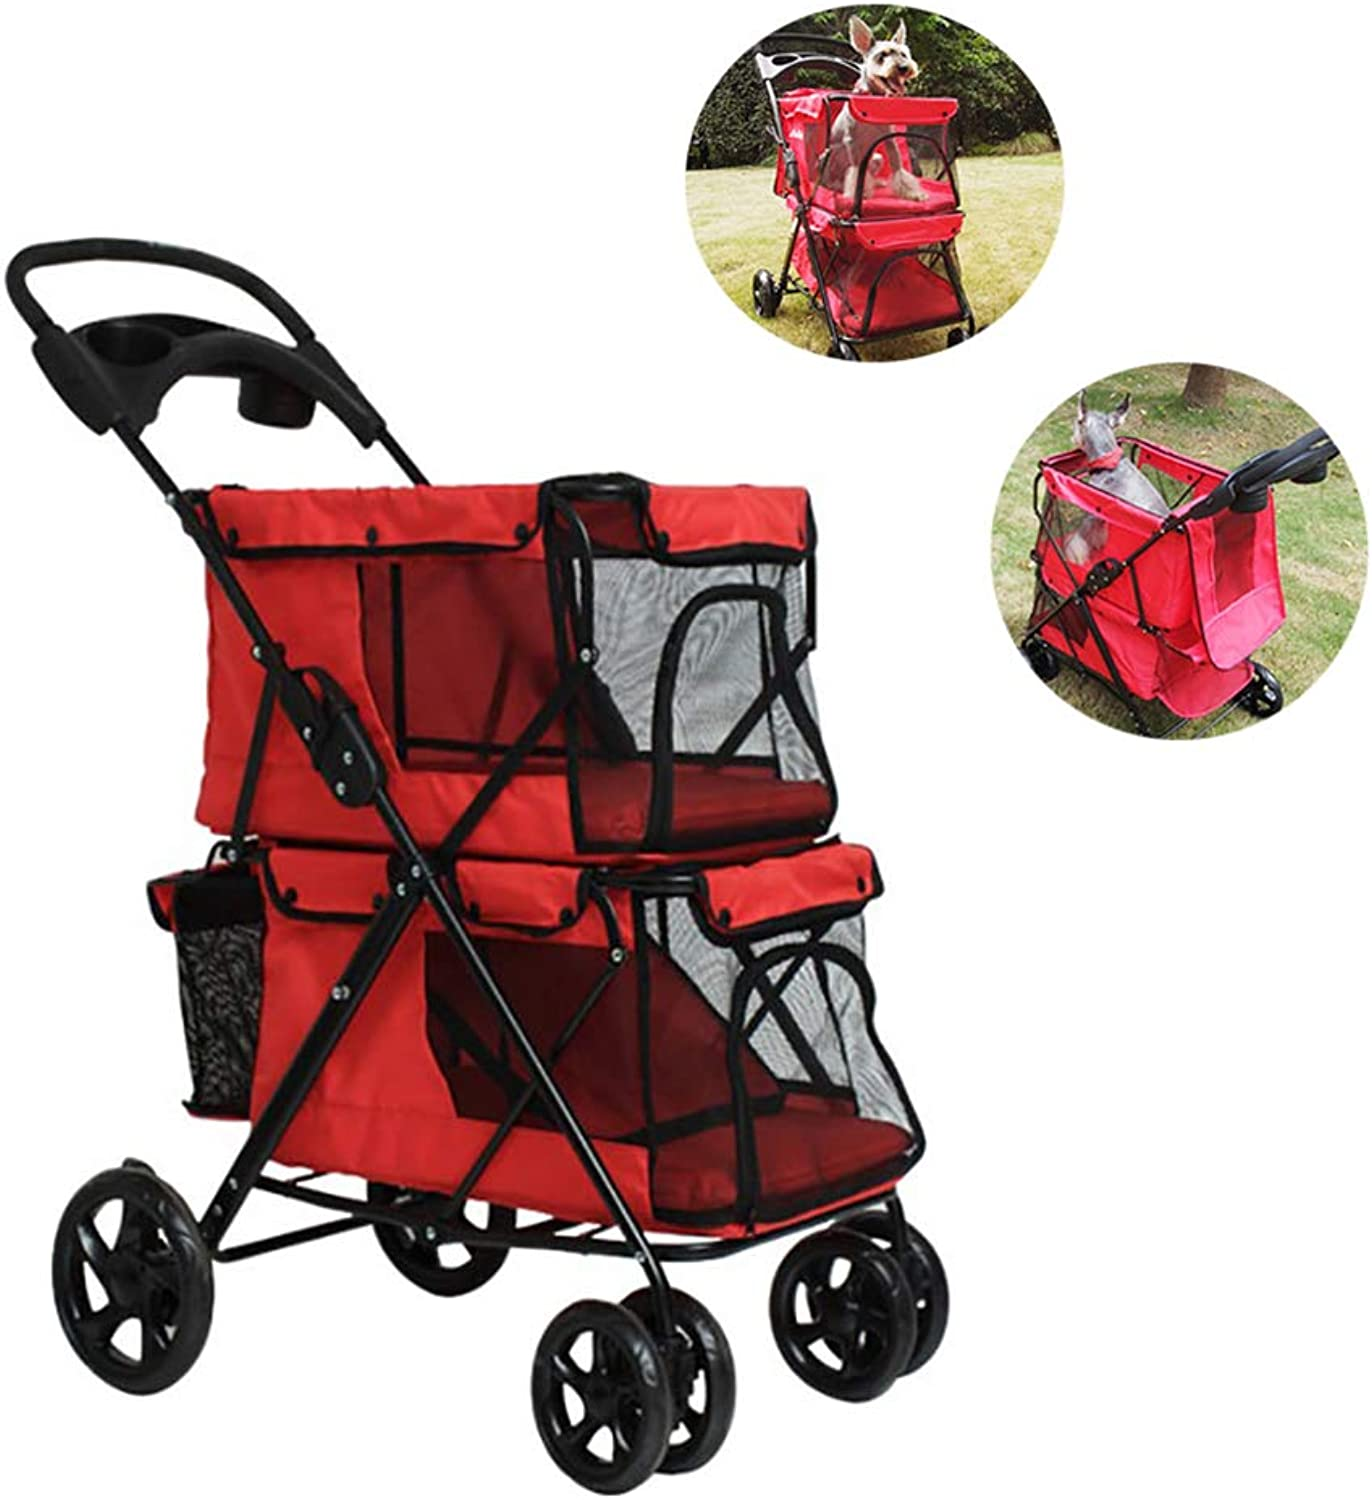 DJLOOKK Pet Stroller Lightweight Folding Double Easy To Carry Sunscreen Breathable Comfort Pet Stroller Dog Big Space Trolley Cage Four Round Outdoor Travel,Red